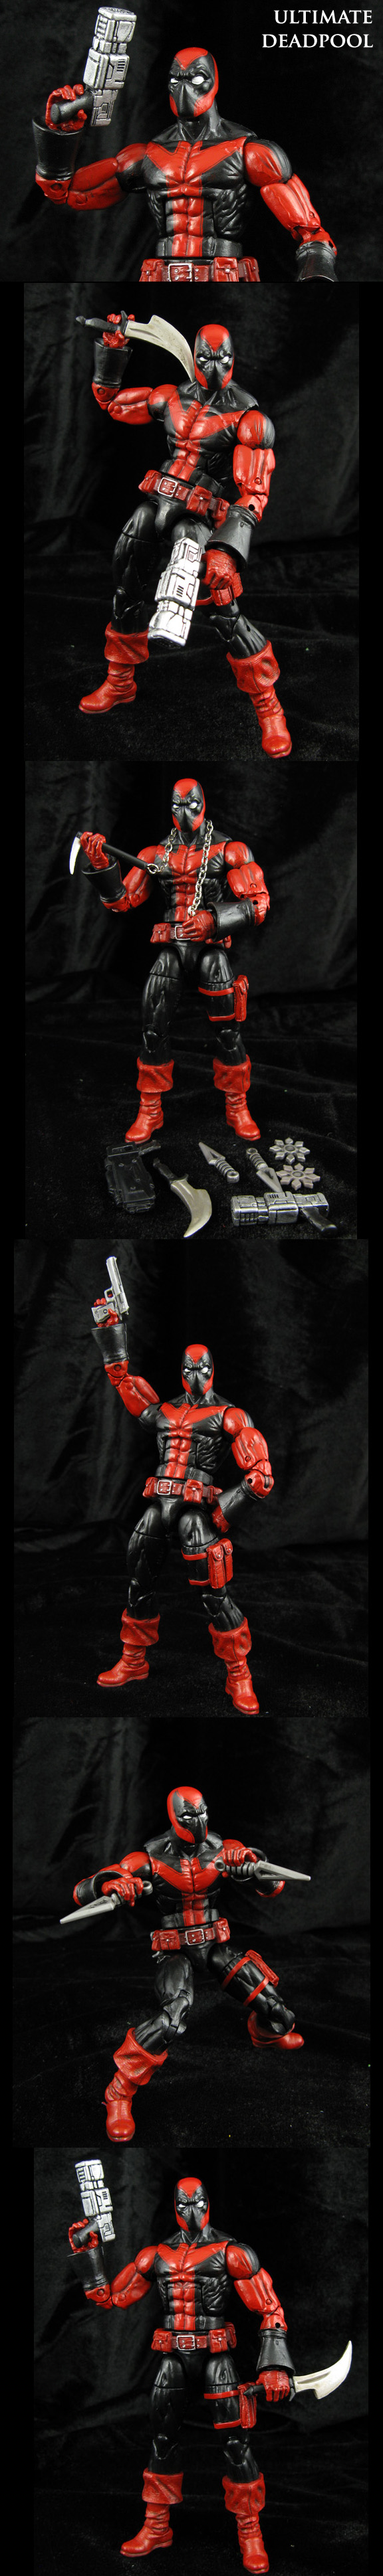 Custom Marvel legends Ultimate Deadpool by Jin-Saotome